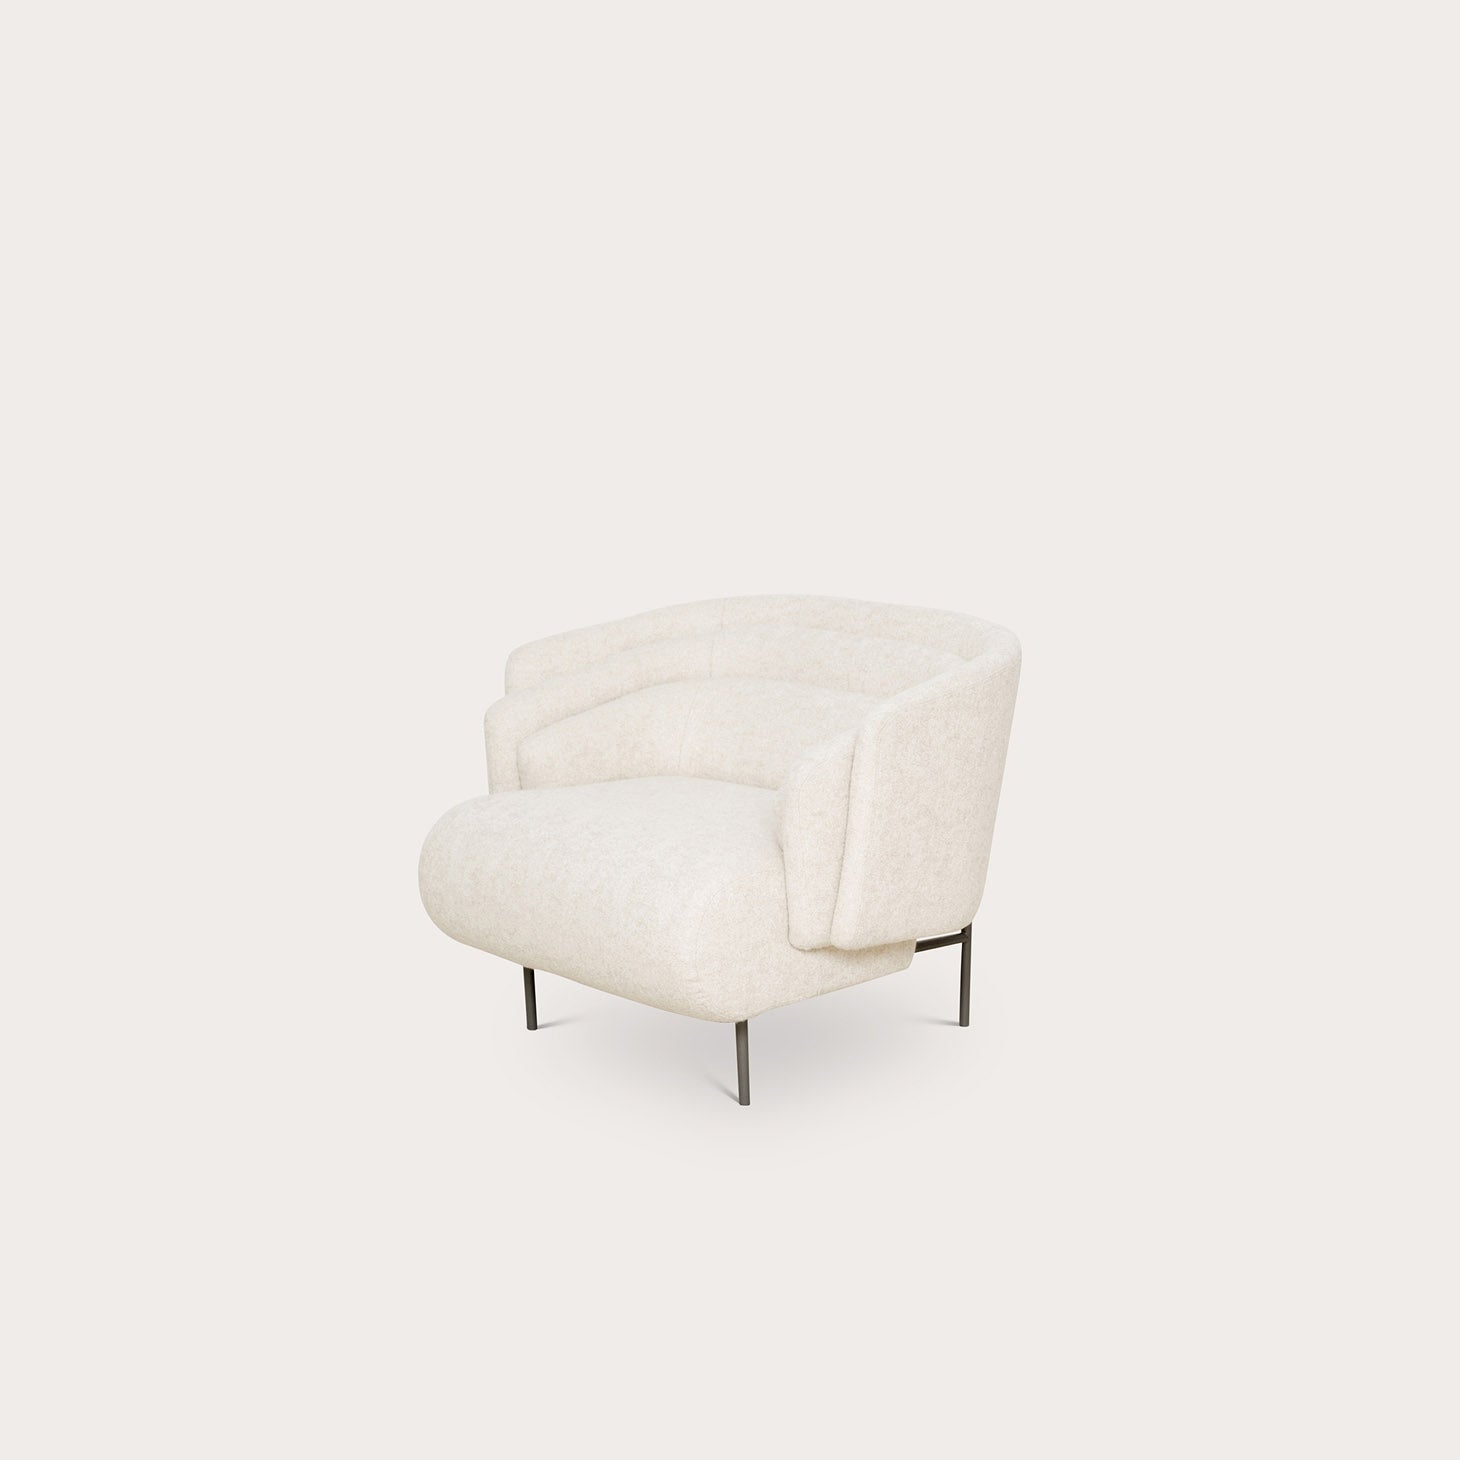 Pleasing Hug Lounge Chairs By Christophe Delcourt Avenue Road Alphanode Cool Chair Designs And Ideas Alphanodeonline